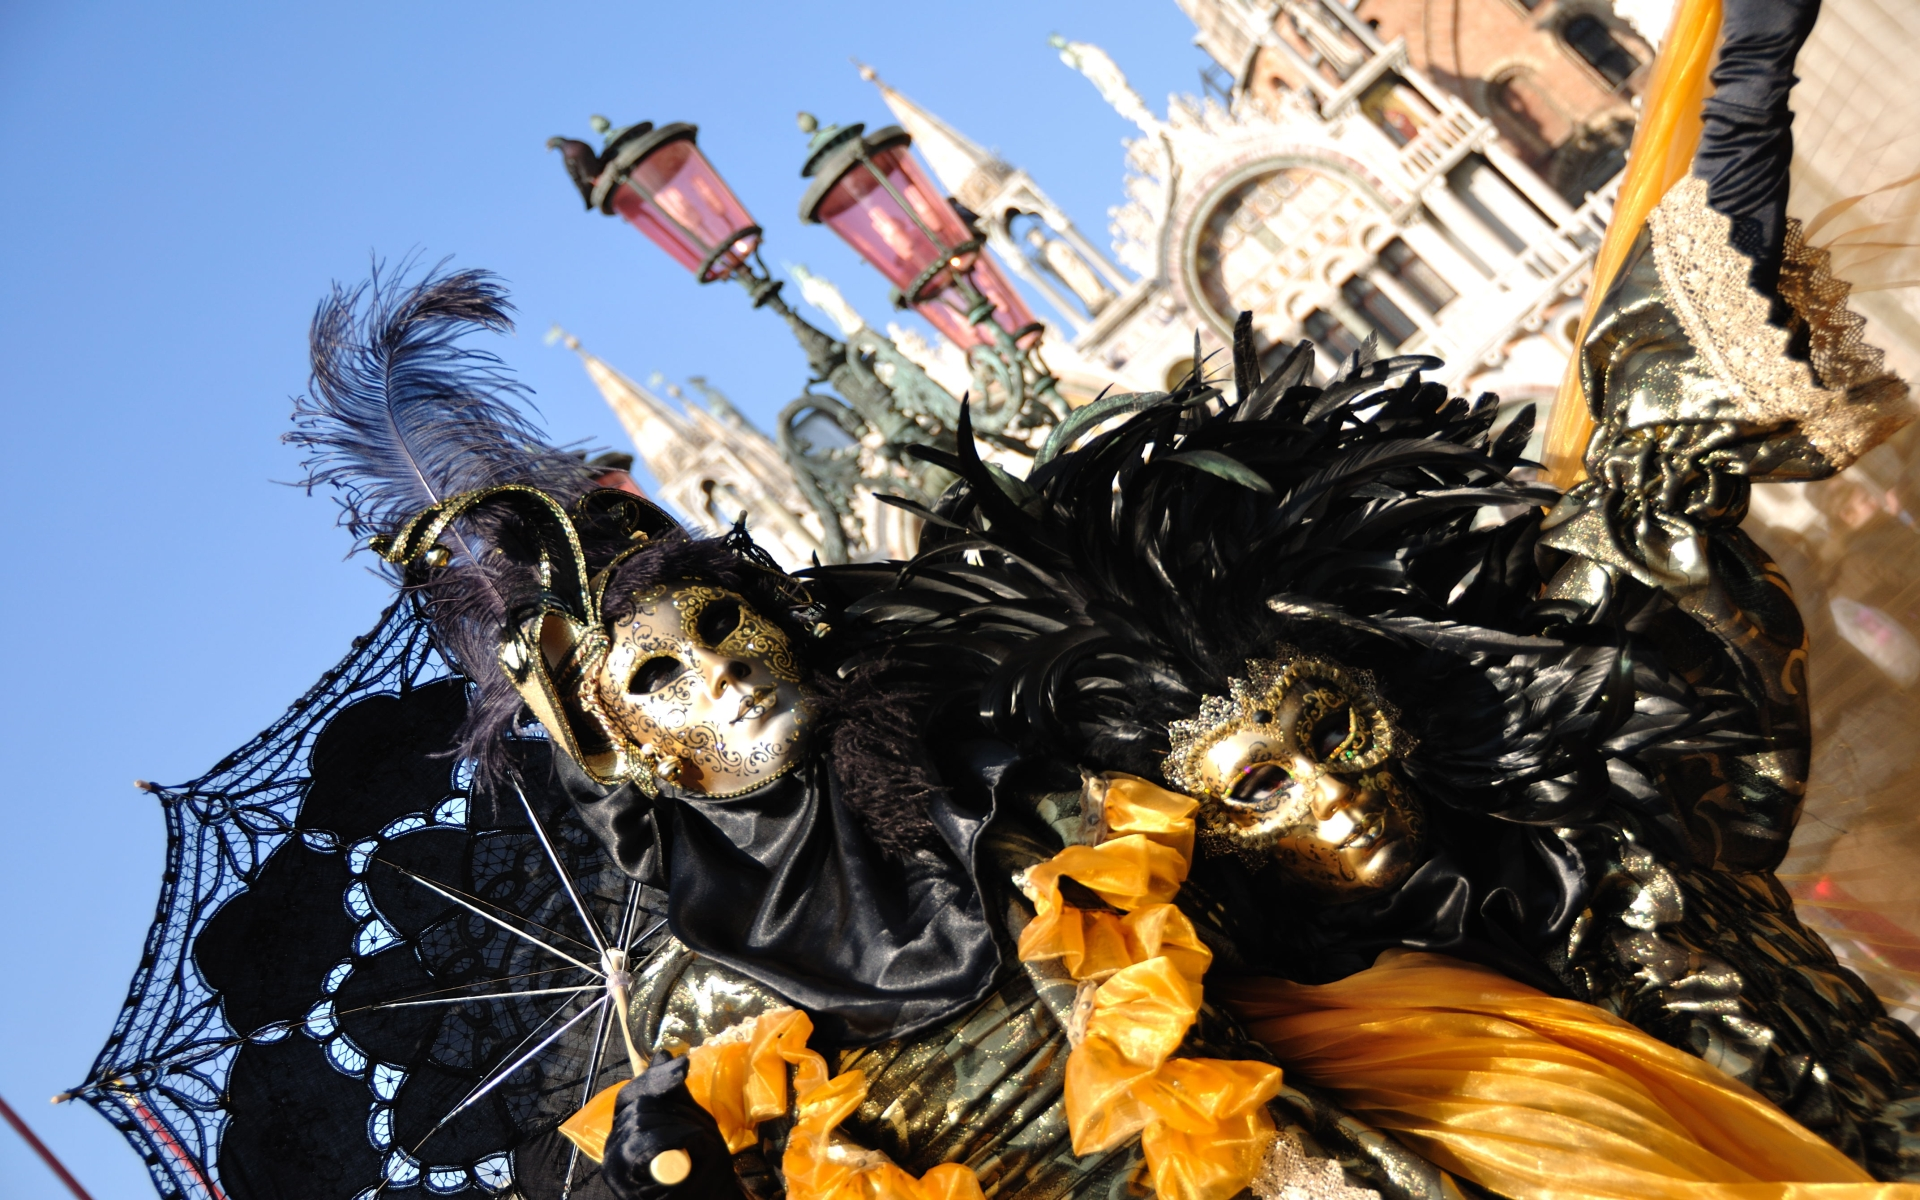 Carnival of Venice Wallpapers, Pictures, Image